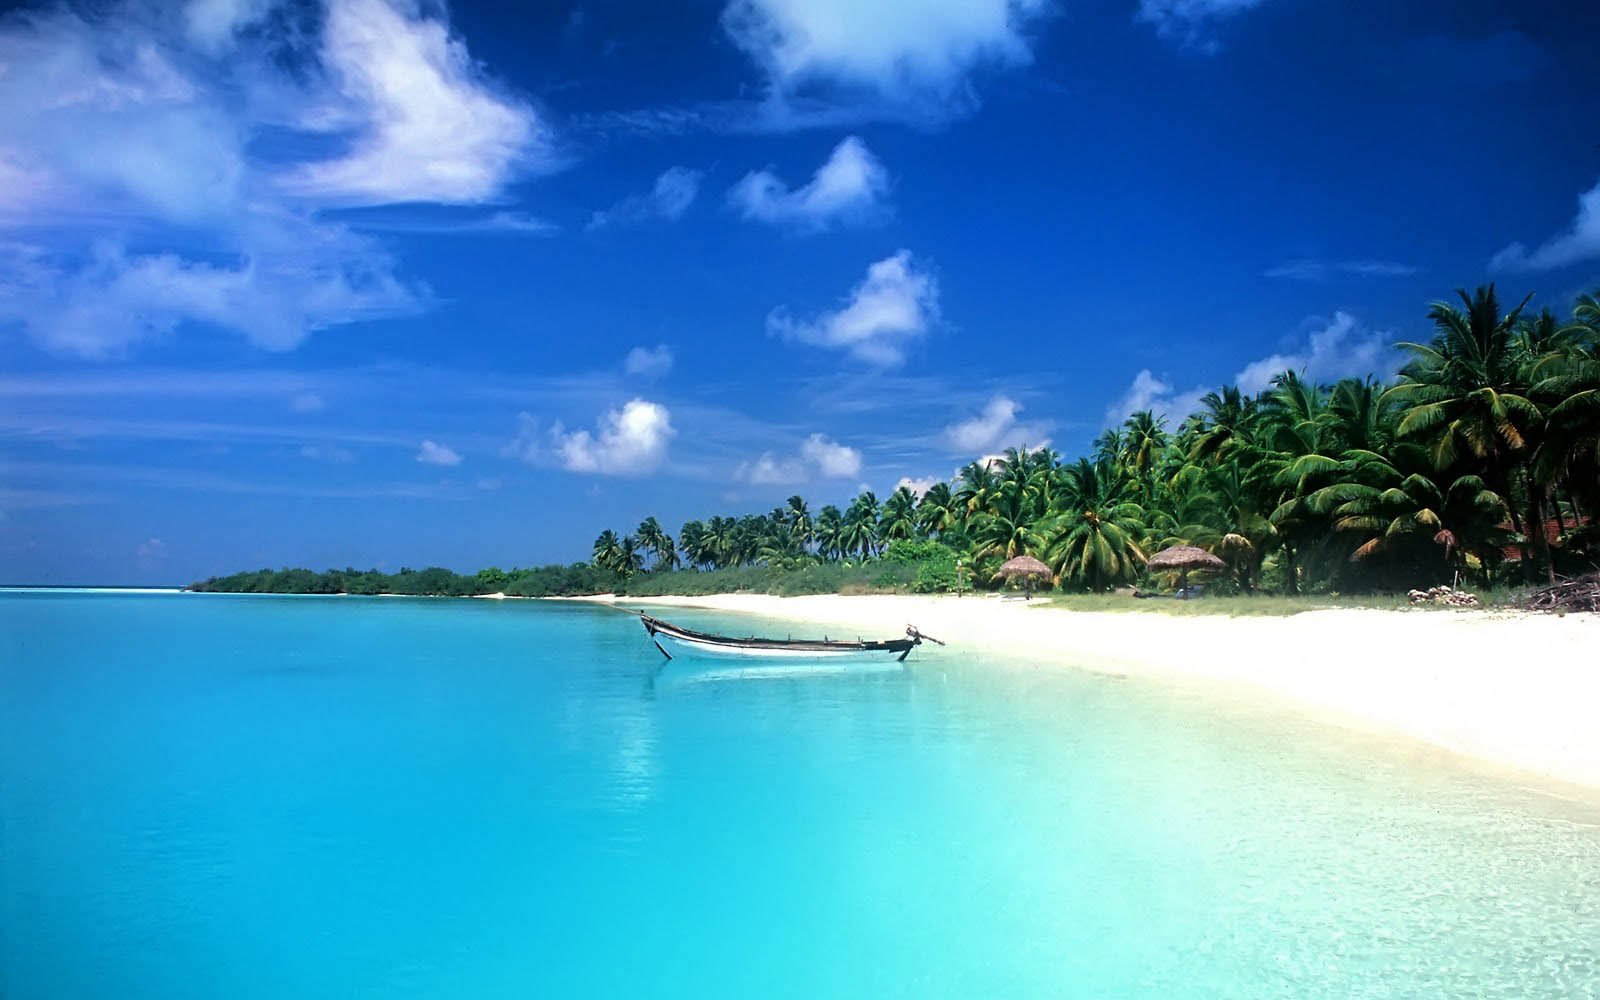 129 Beach Wallpaper Examples To Put On Your Desktop Background 1600x1000